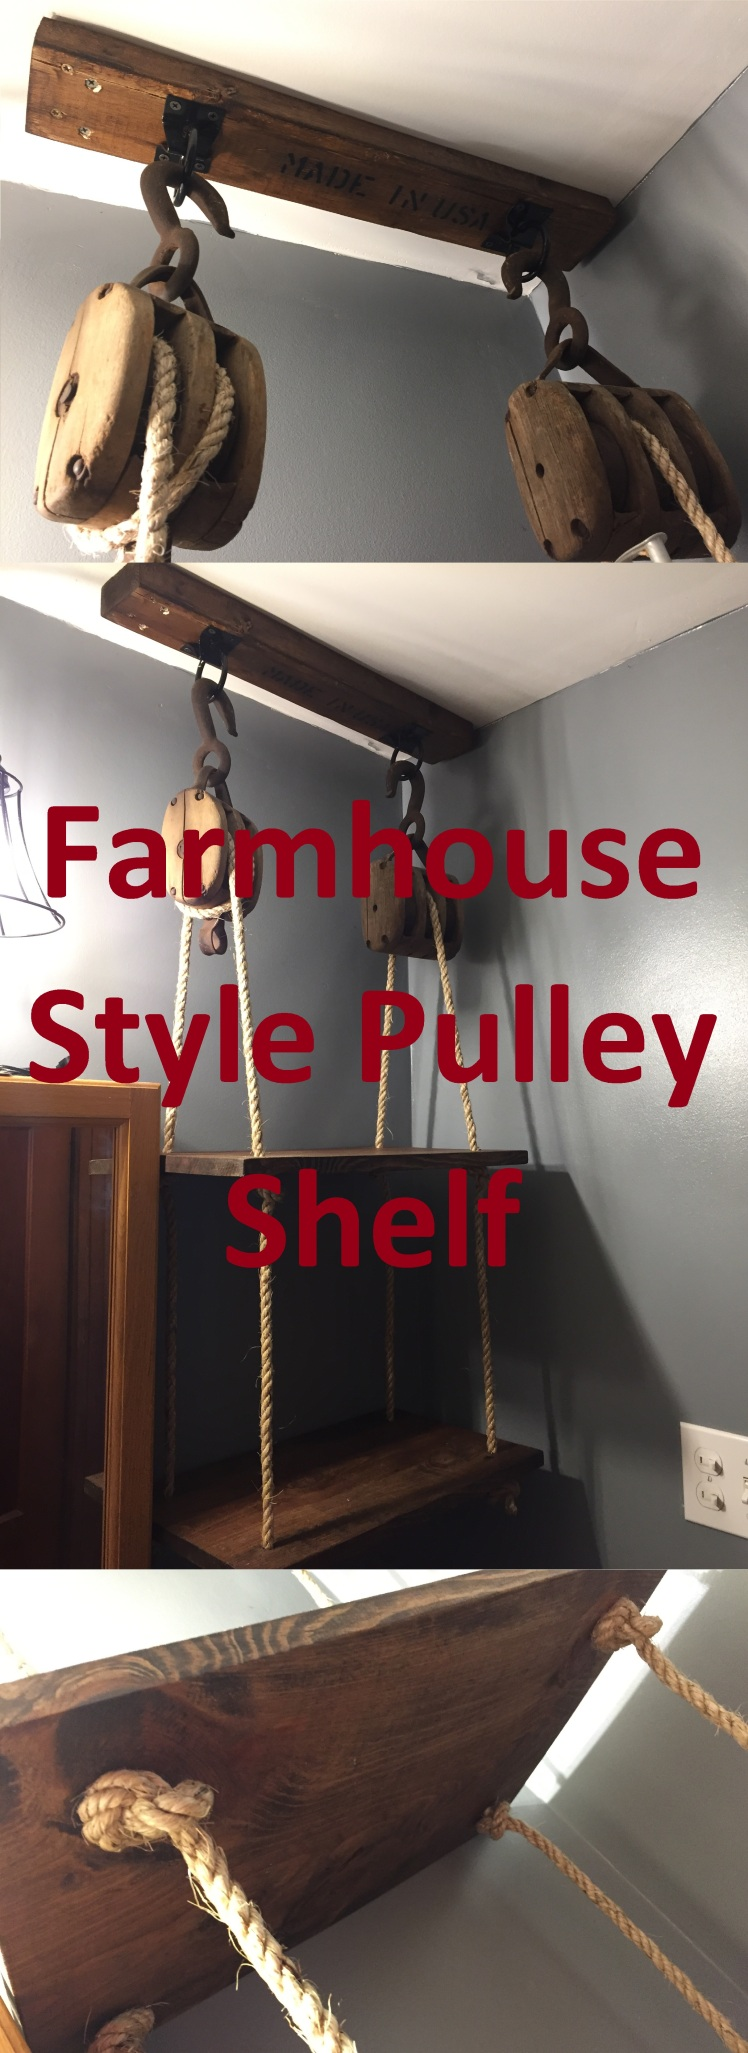 Farmhouse Style Pulley Shelf